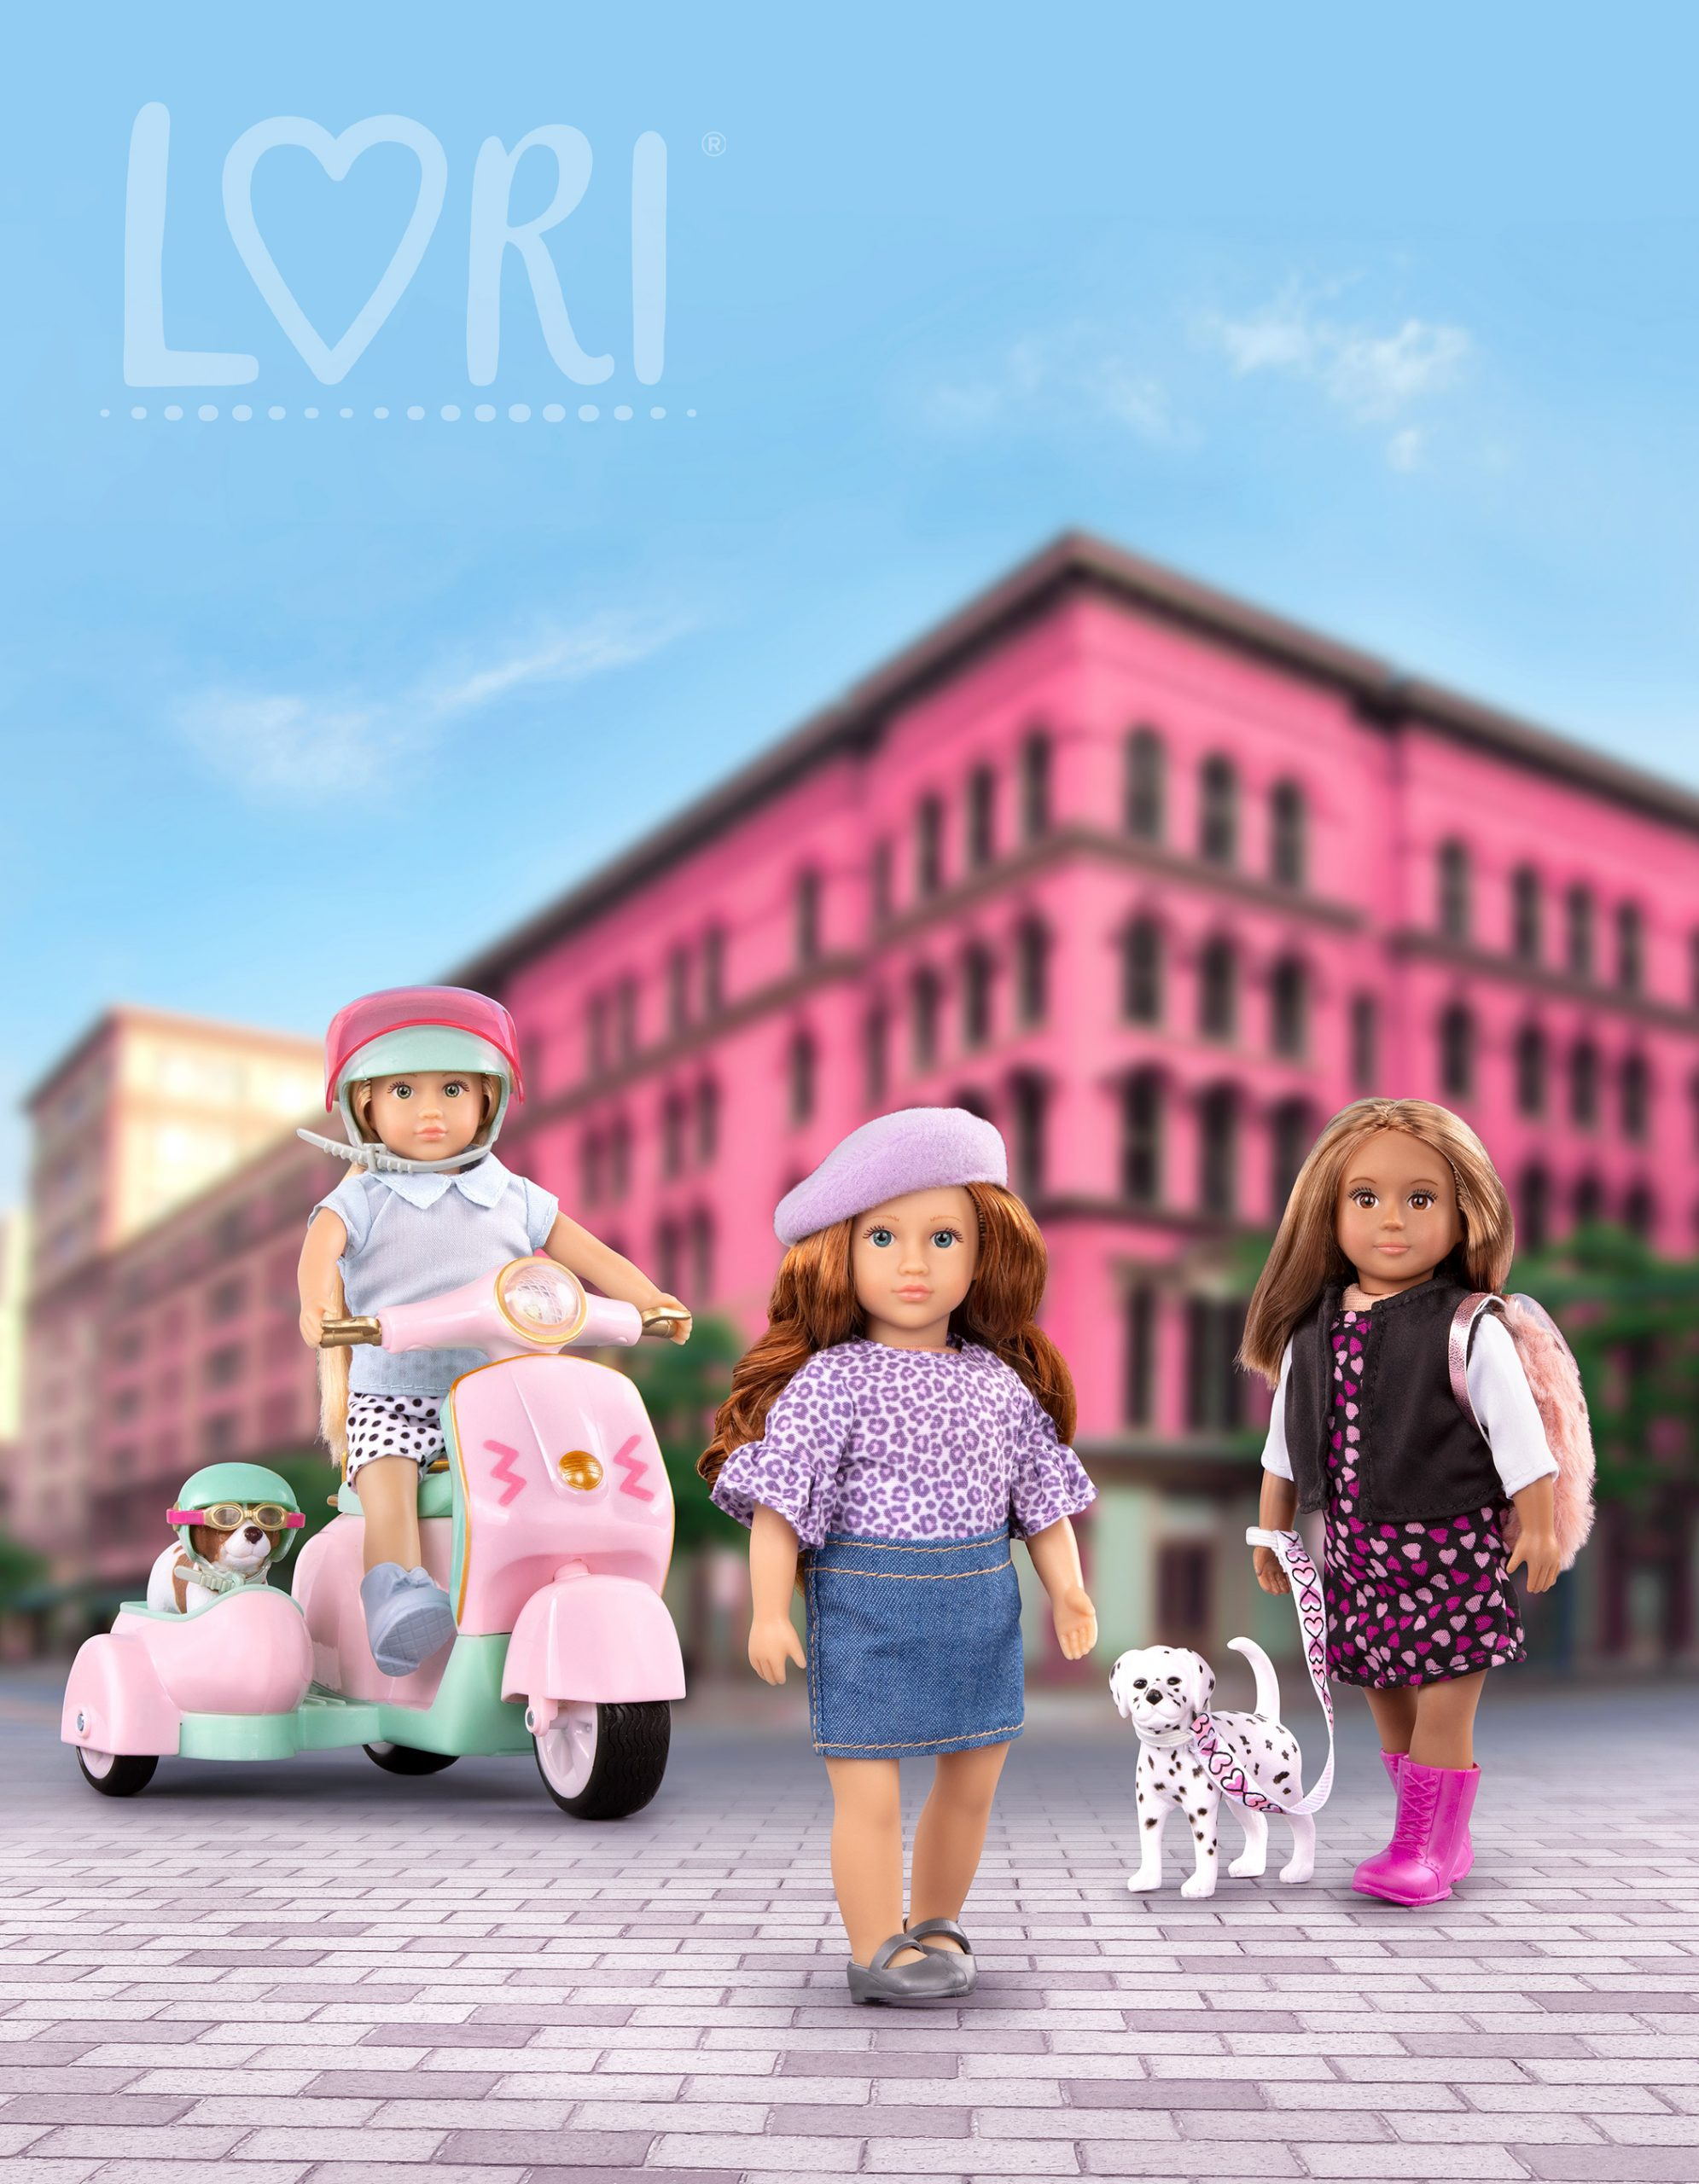 Lori Dolls, kids doll gift ideas, holiday gift guide, sweet suite at home